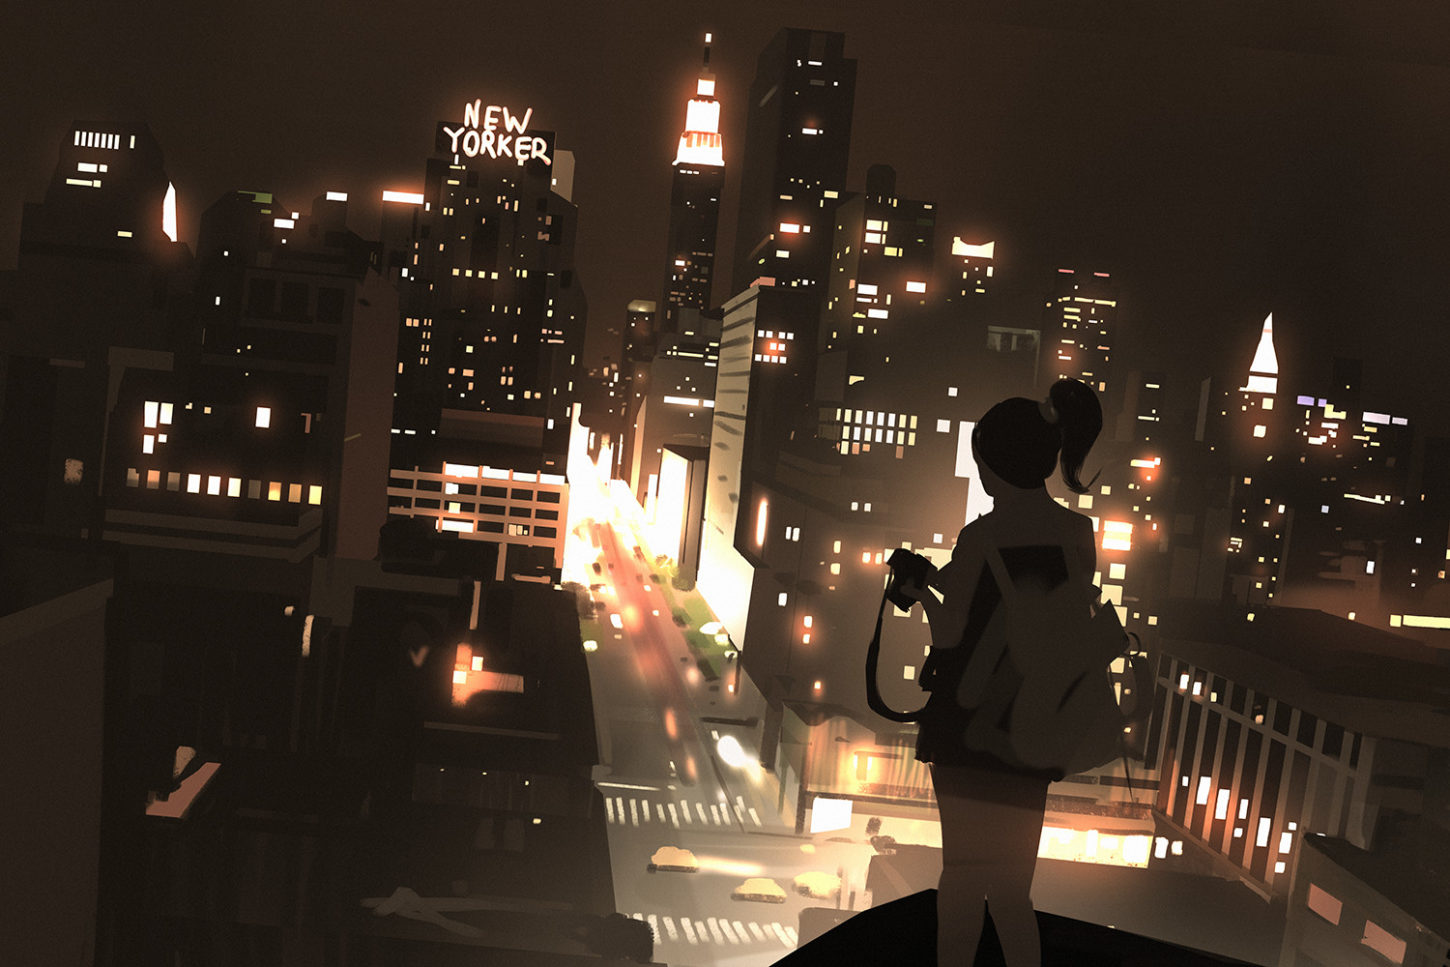 Sketch collection 1 2018 City lights, Atey Ghailan_03